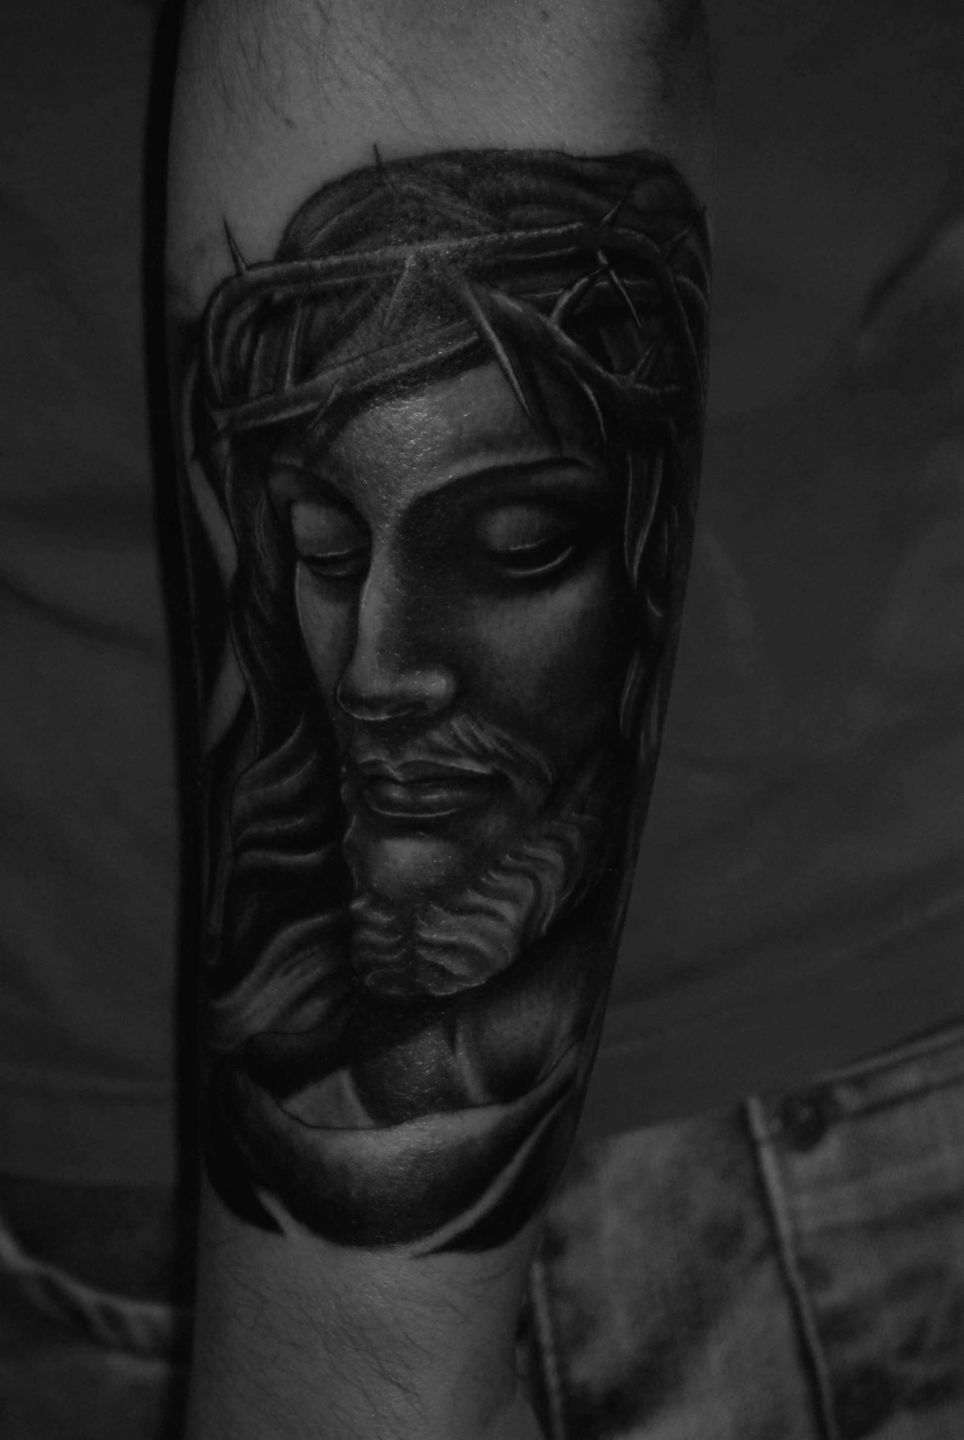 Jesus-christstatue-rosemary-mckevitt-tattoo-ireland